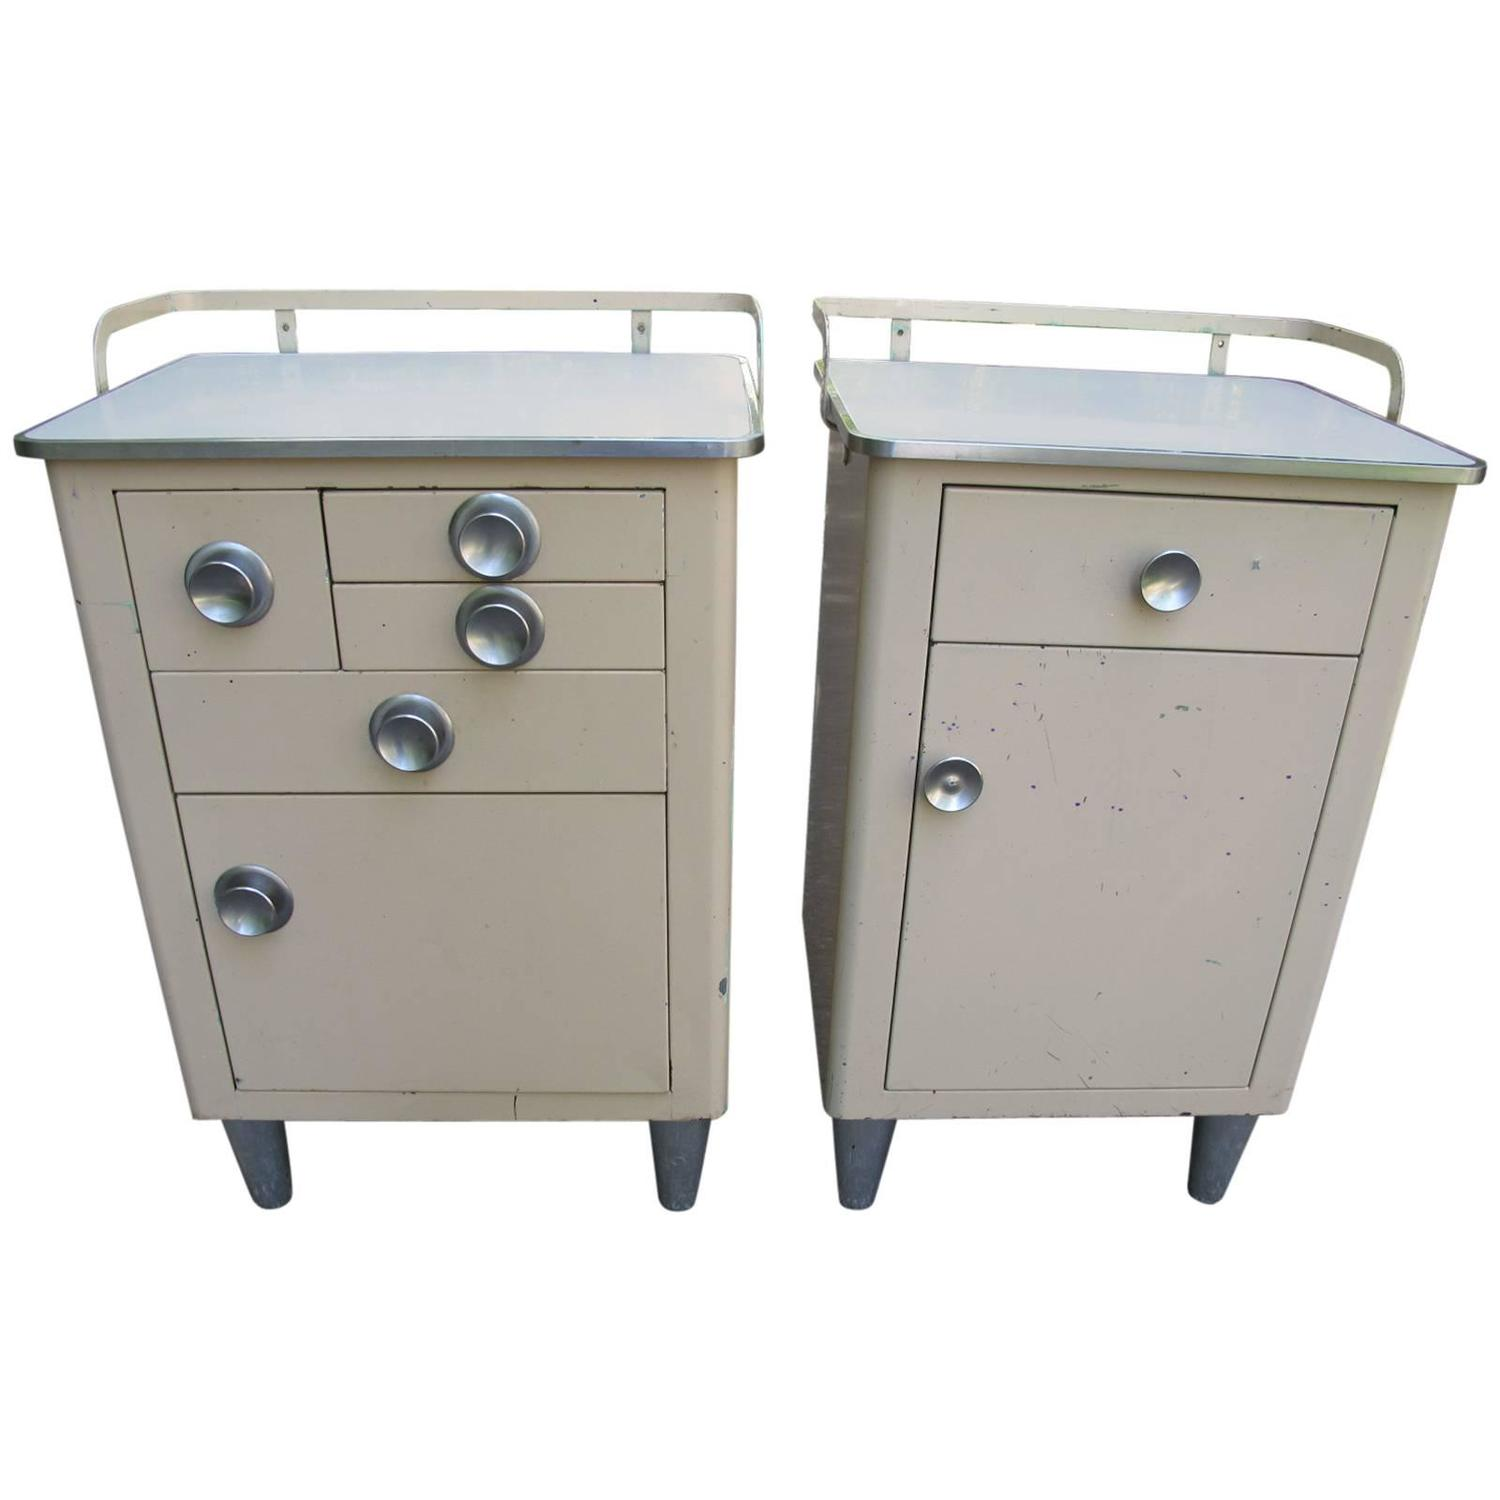 Pair of american 1940s steel medical cabinets for sale at for 1940s kitchen cabinets for sale